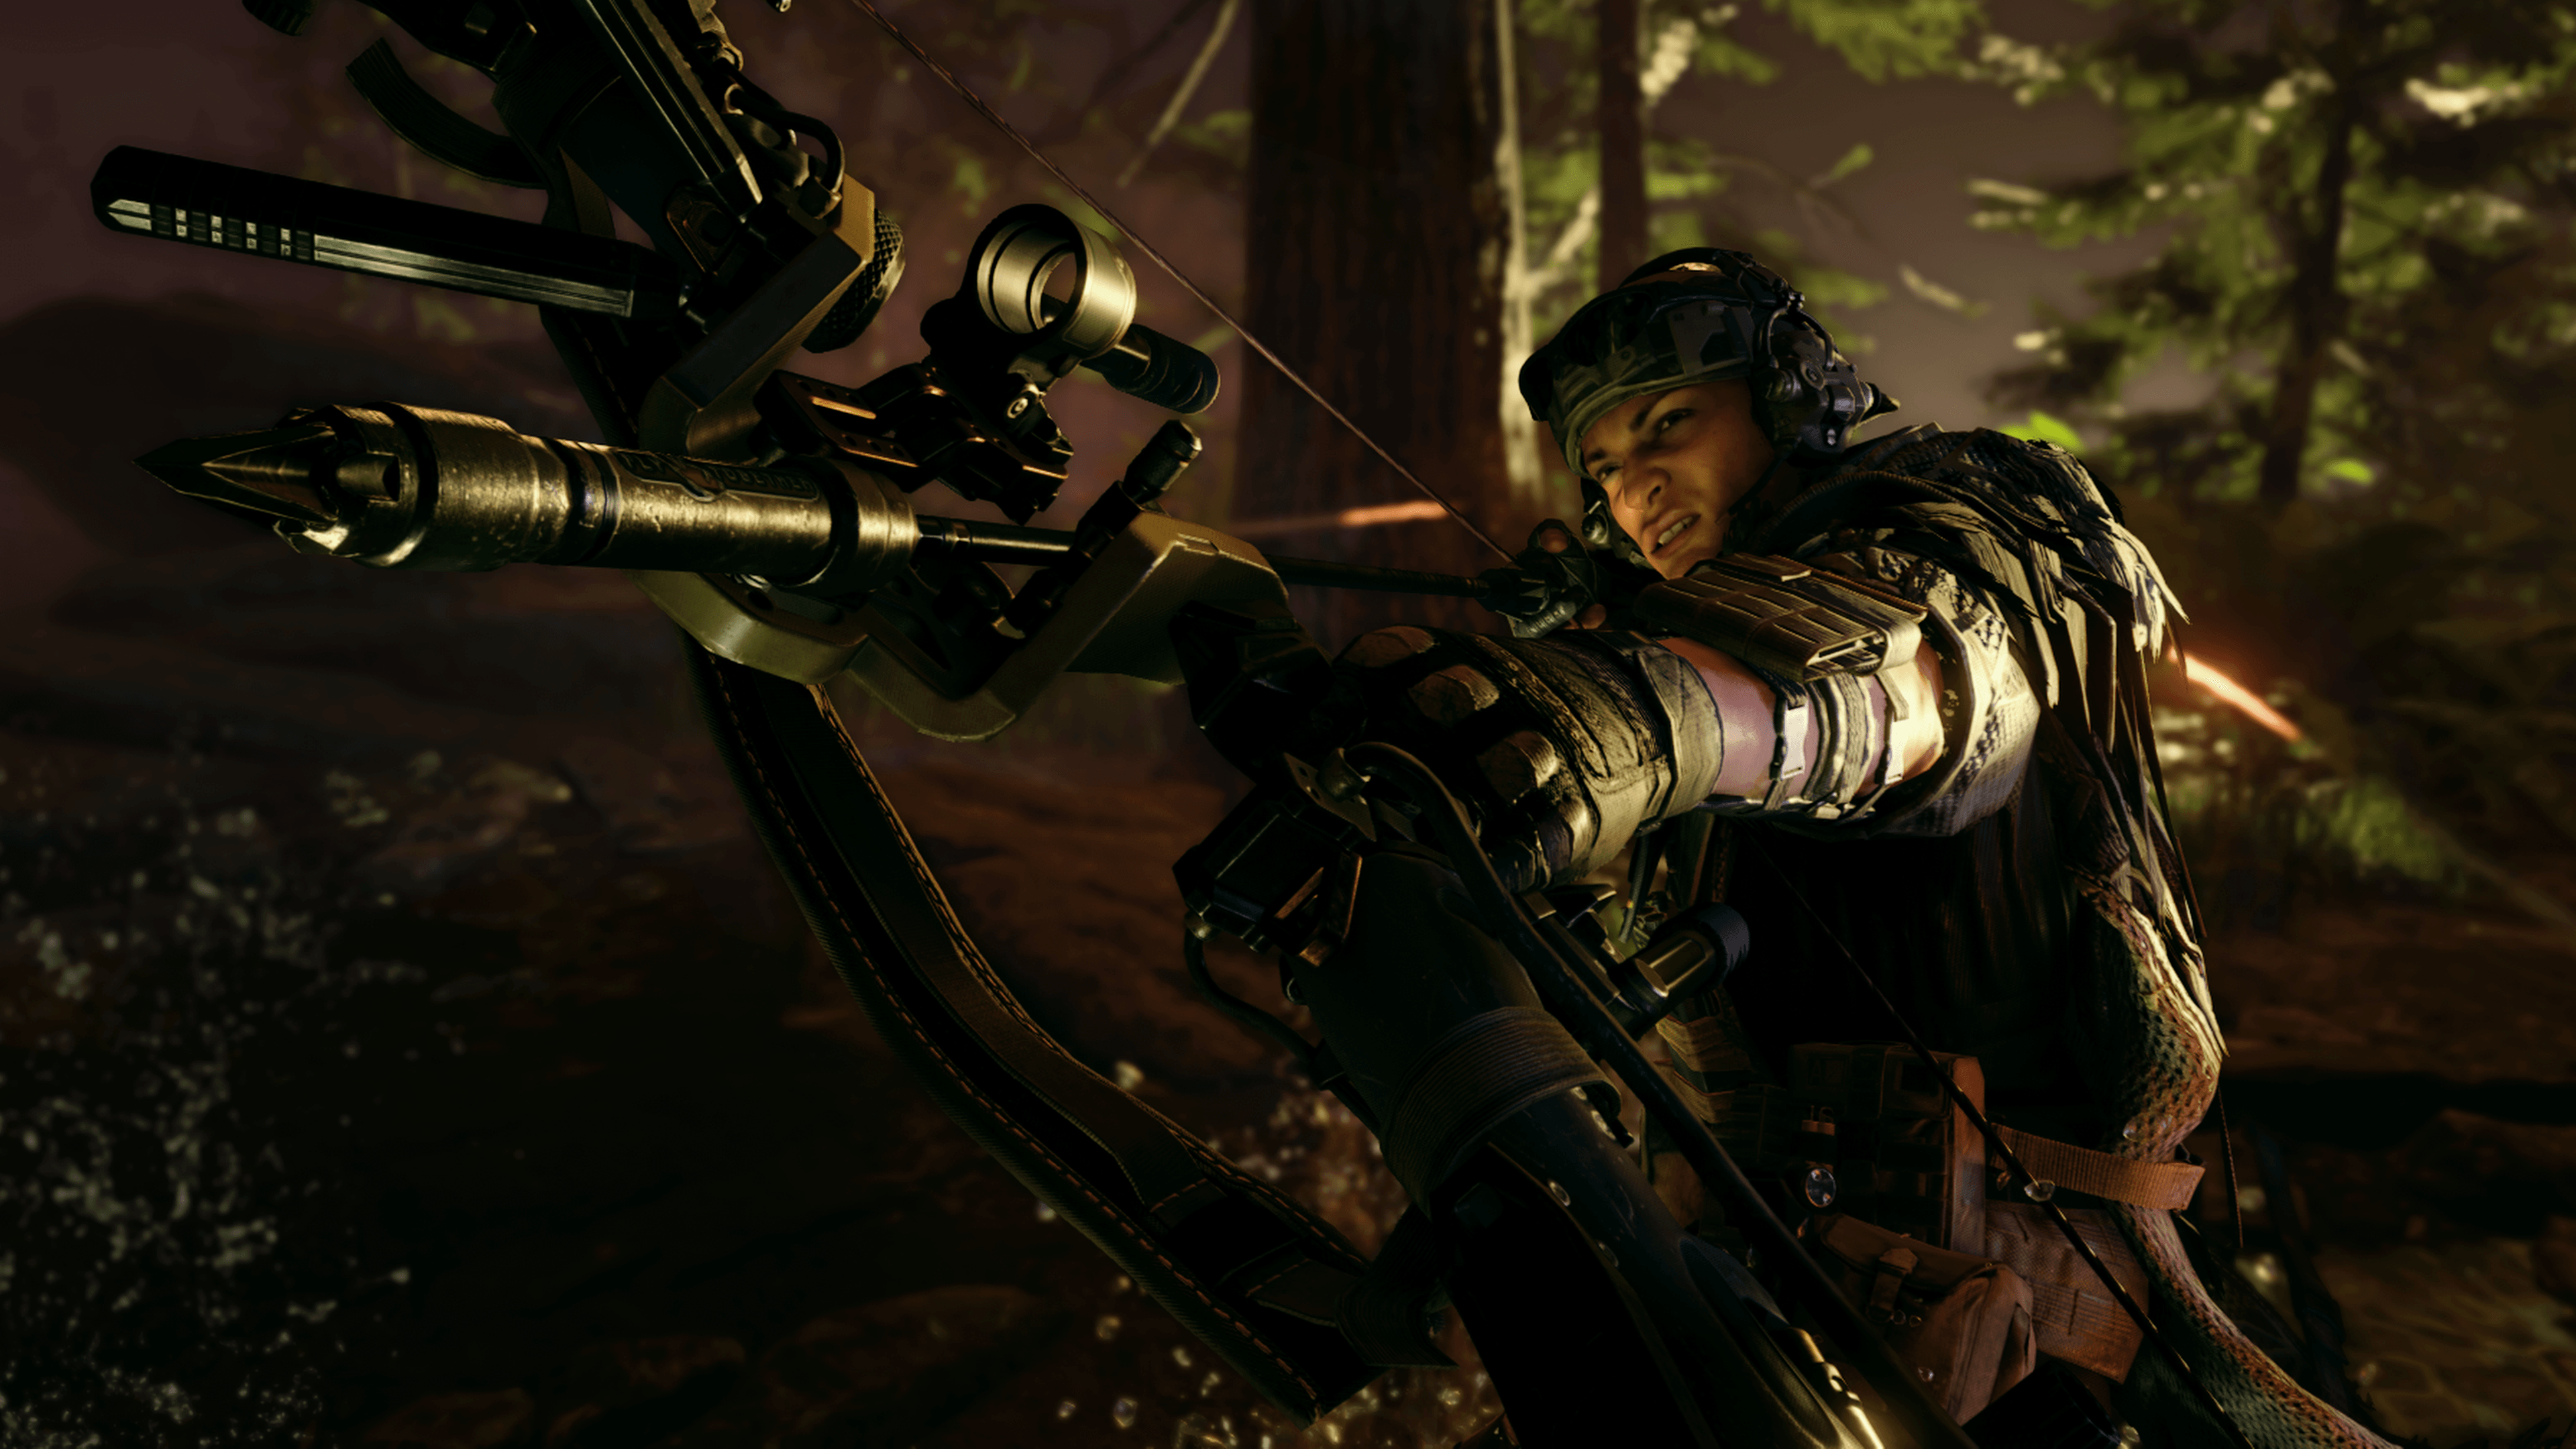 How to Get Outrider Specialist in Call of Duty: Black Ops 4